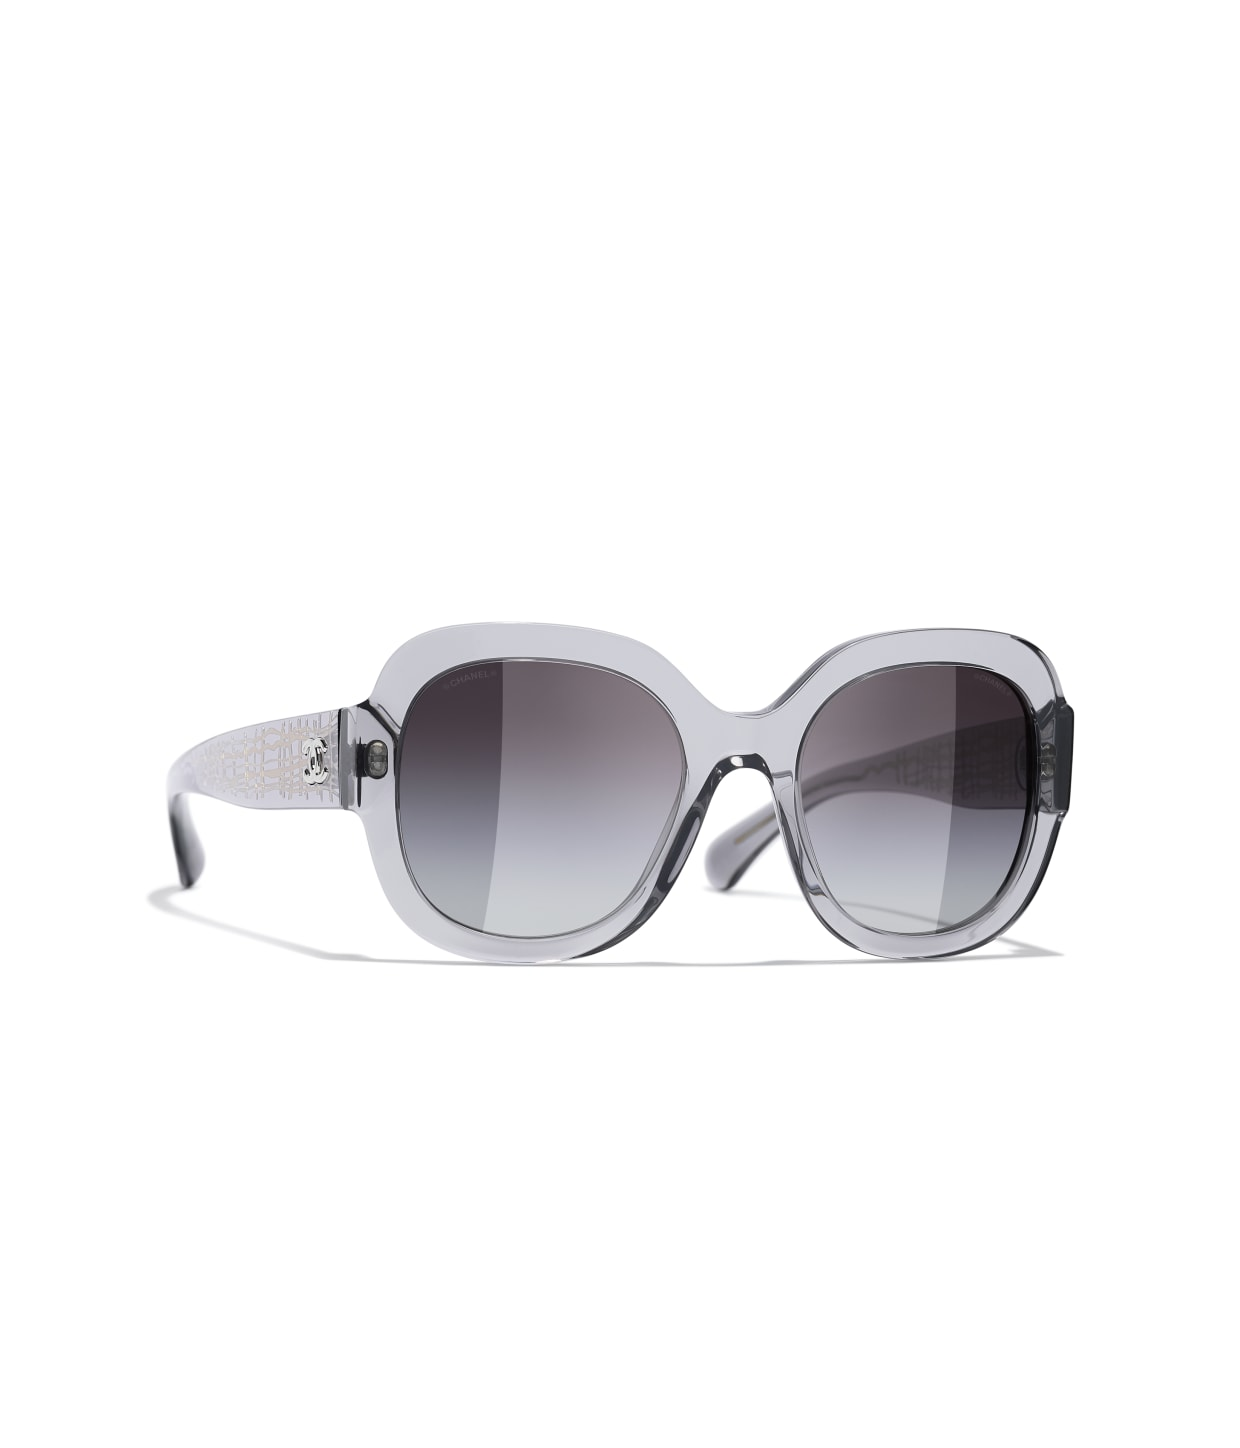 Square Sunglasses Transparent Gray Square Sunglasses Chanel Transparent sunglasses europe's favourite online optician 1,5 million satisfied customers try on in 3d or at home free.…and improve your chances of finding the perfect pair of glasses! square sunglasses transparent gray square sunglasses chanel